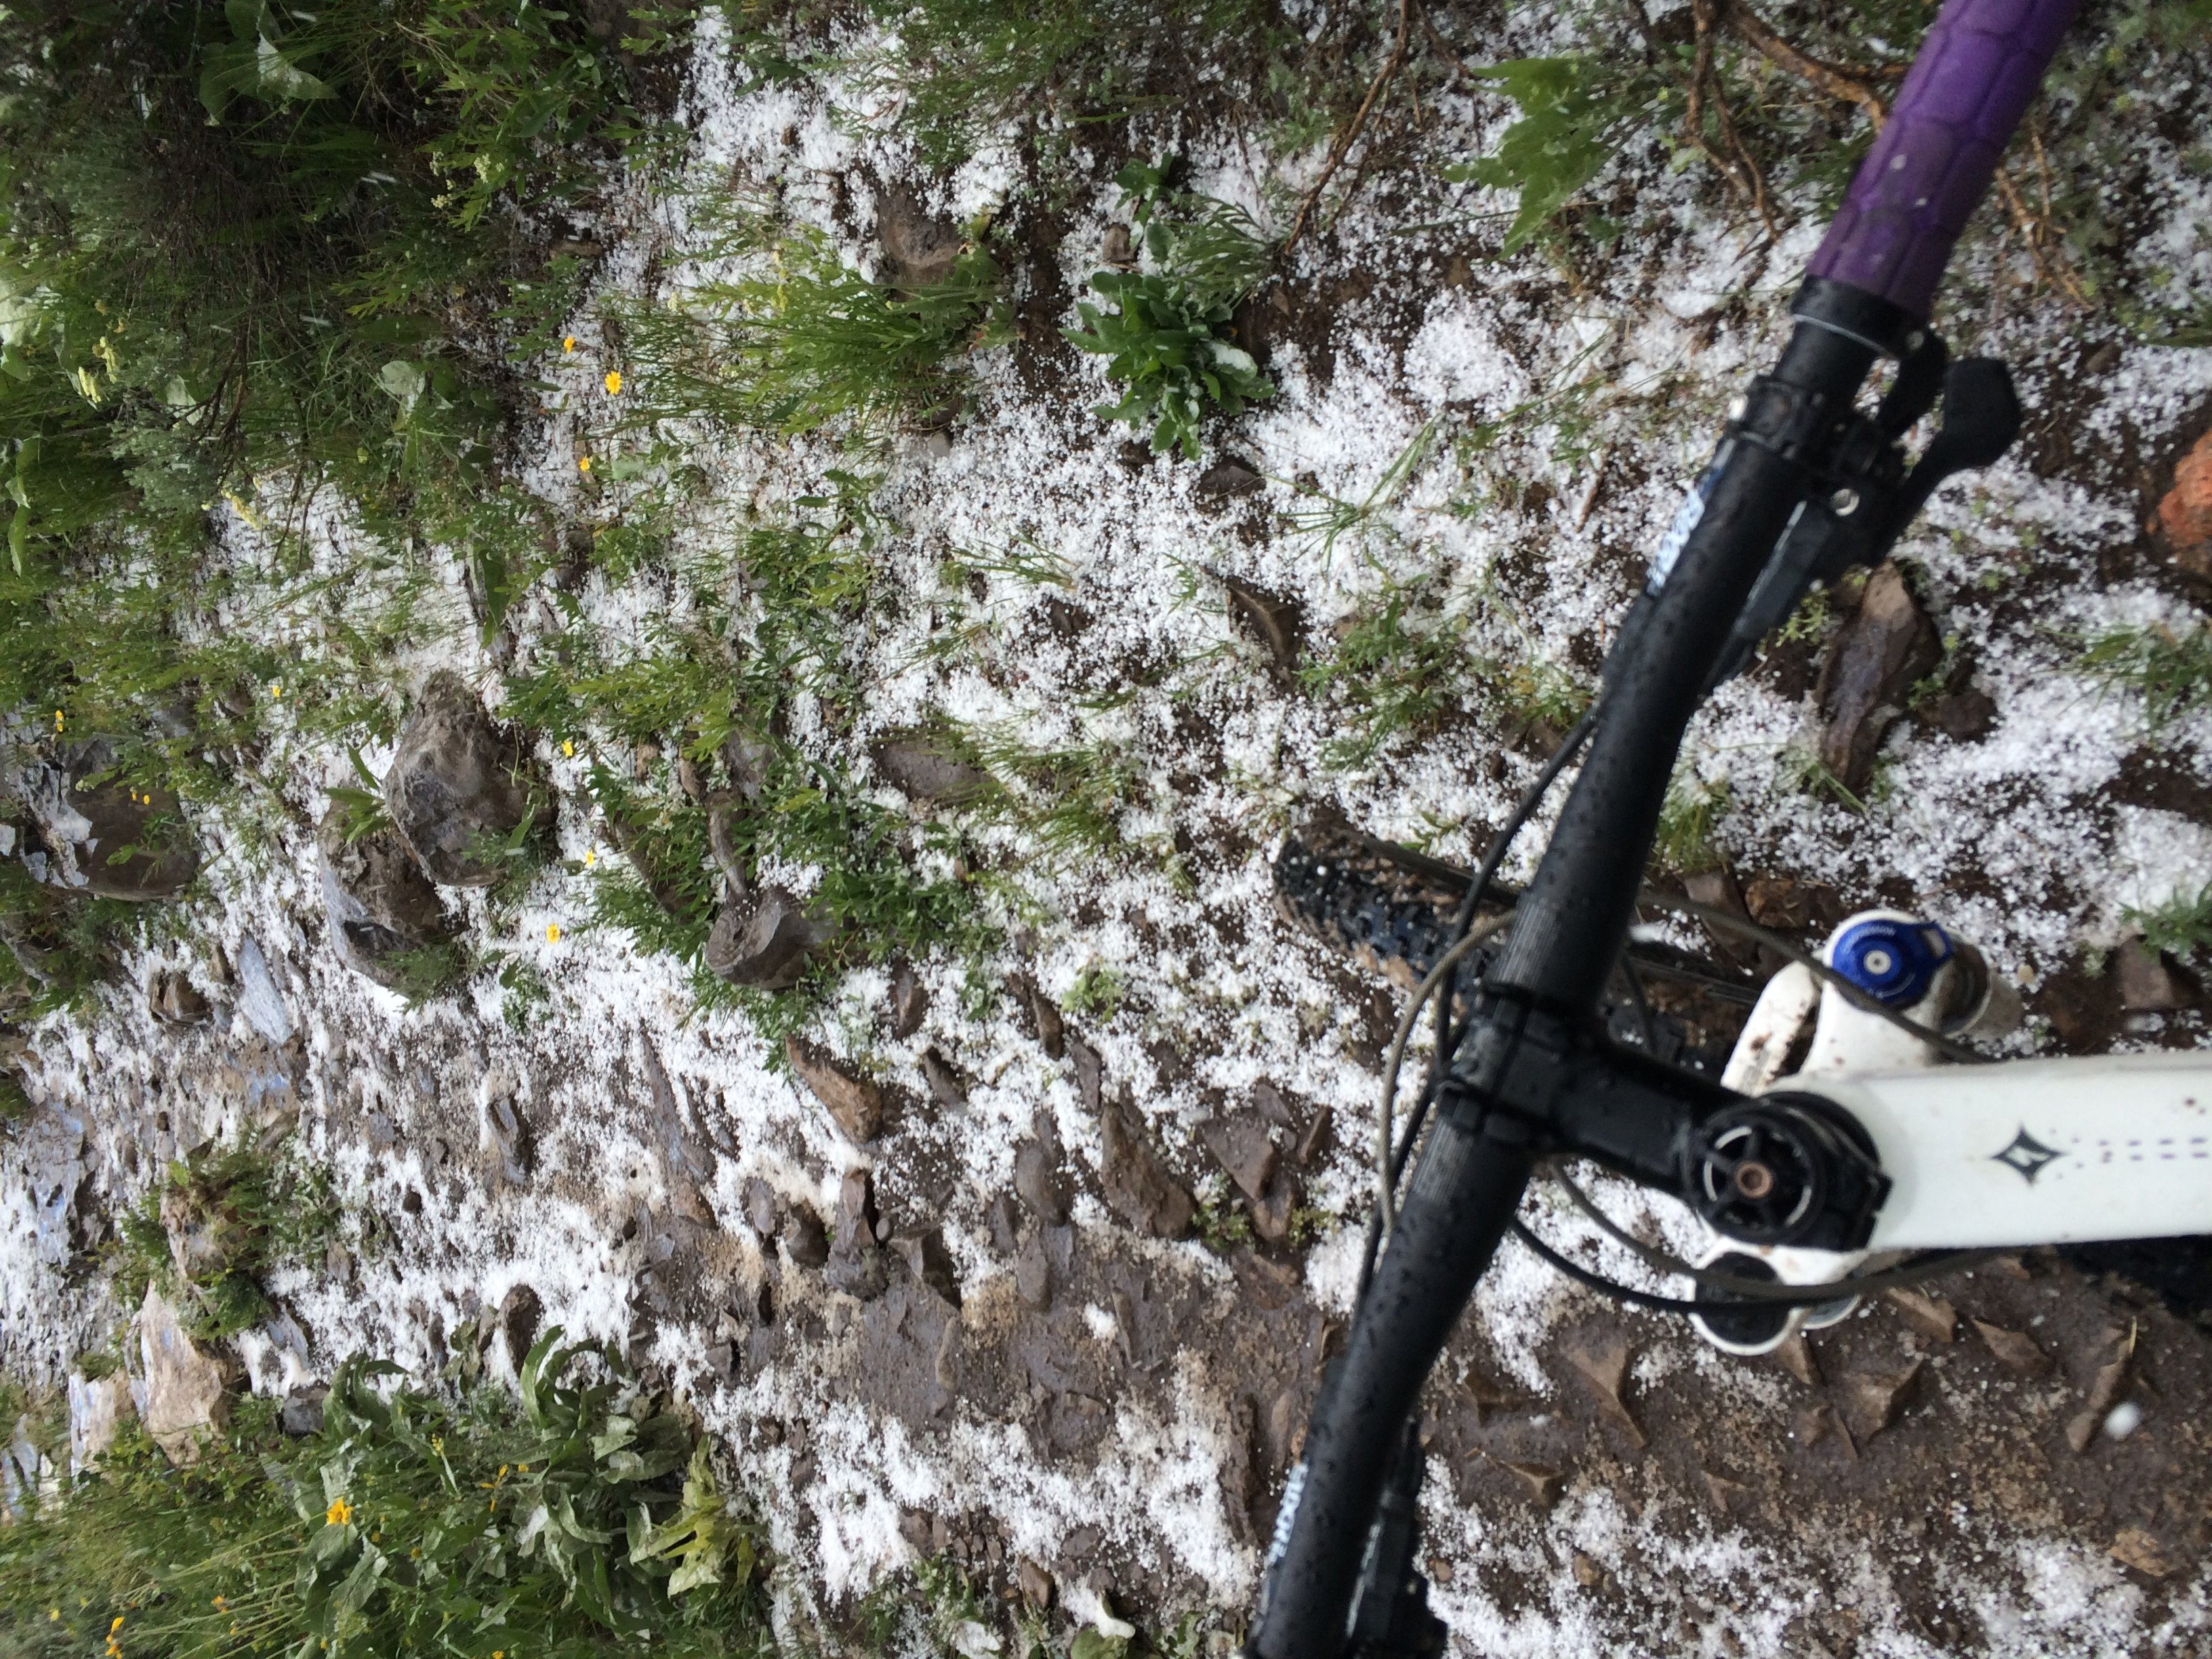 Long training rides in hail storms